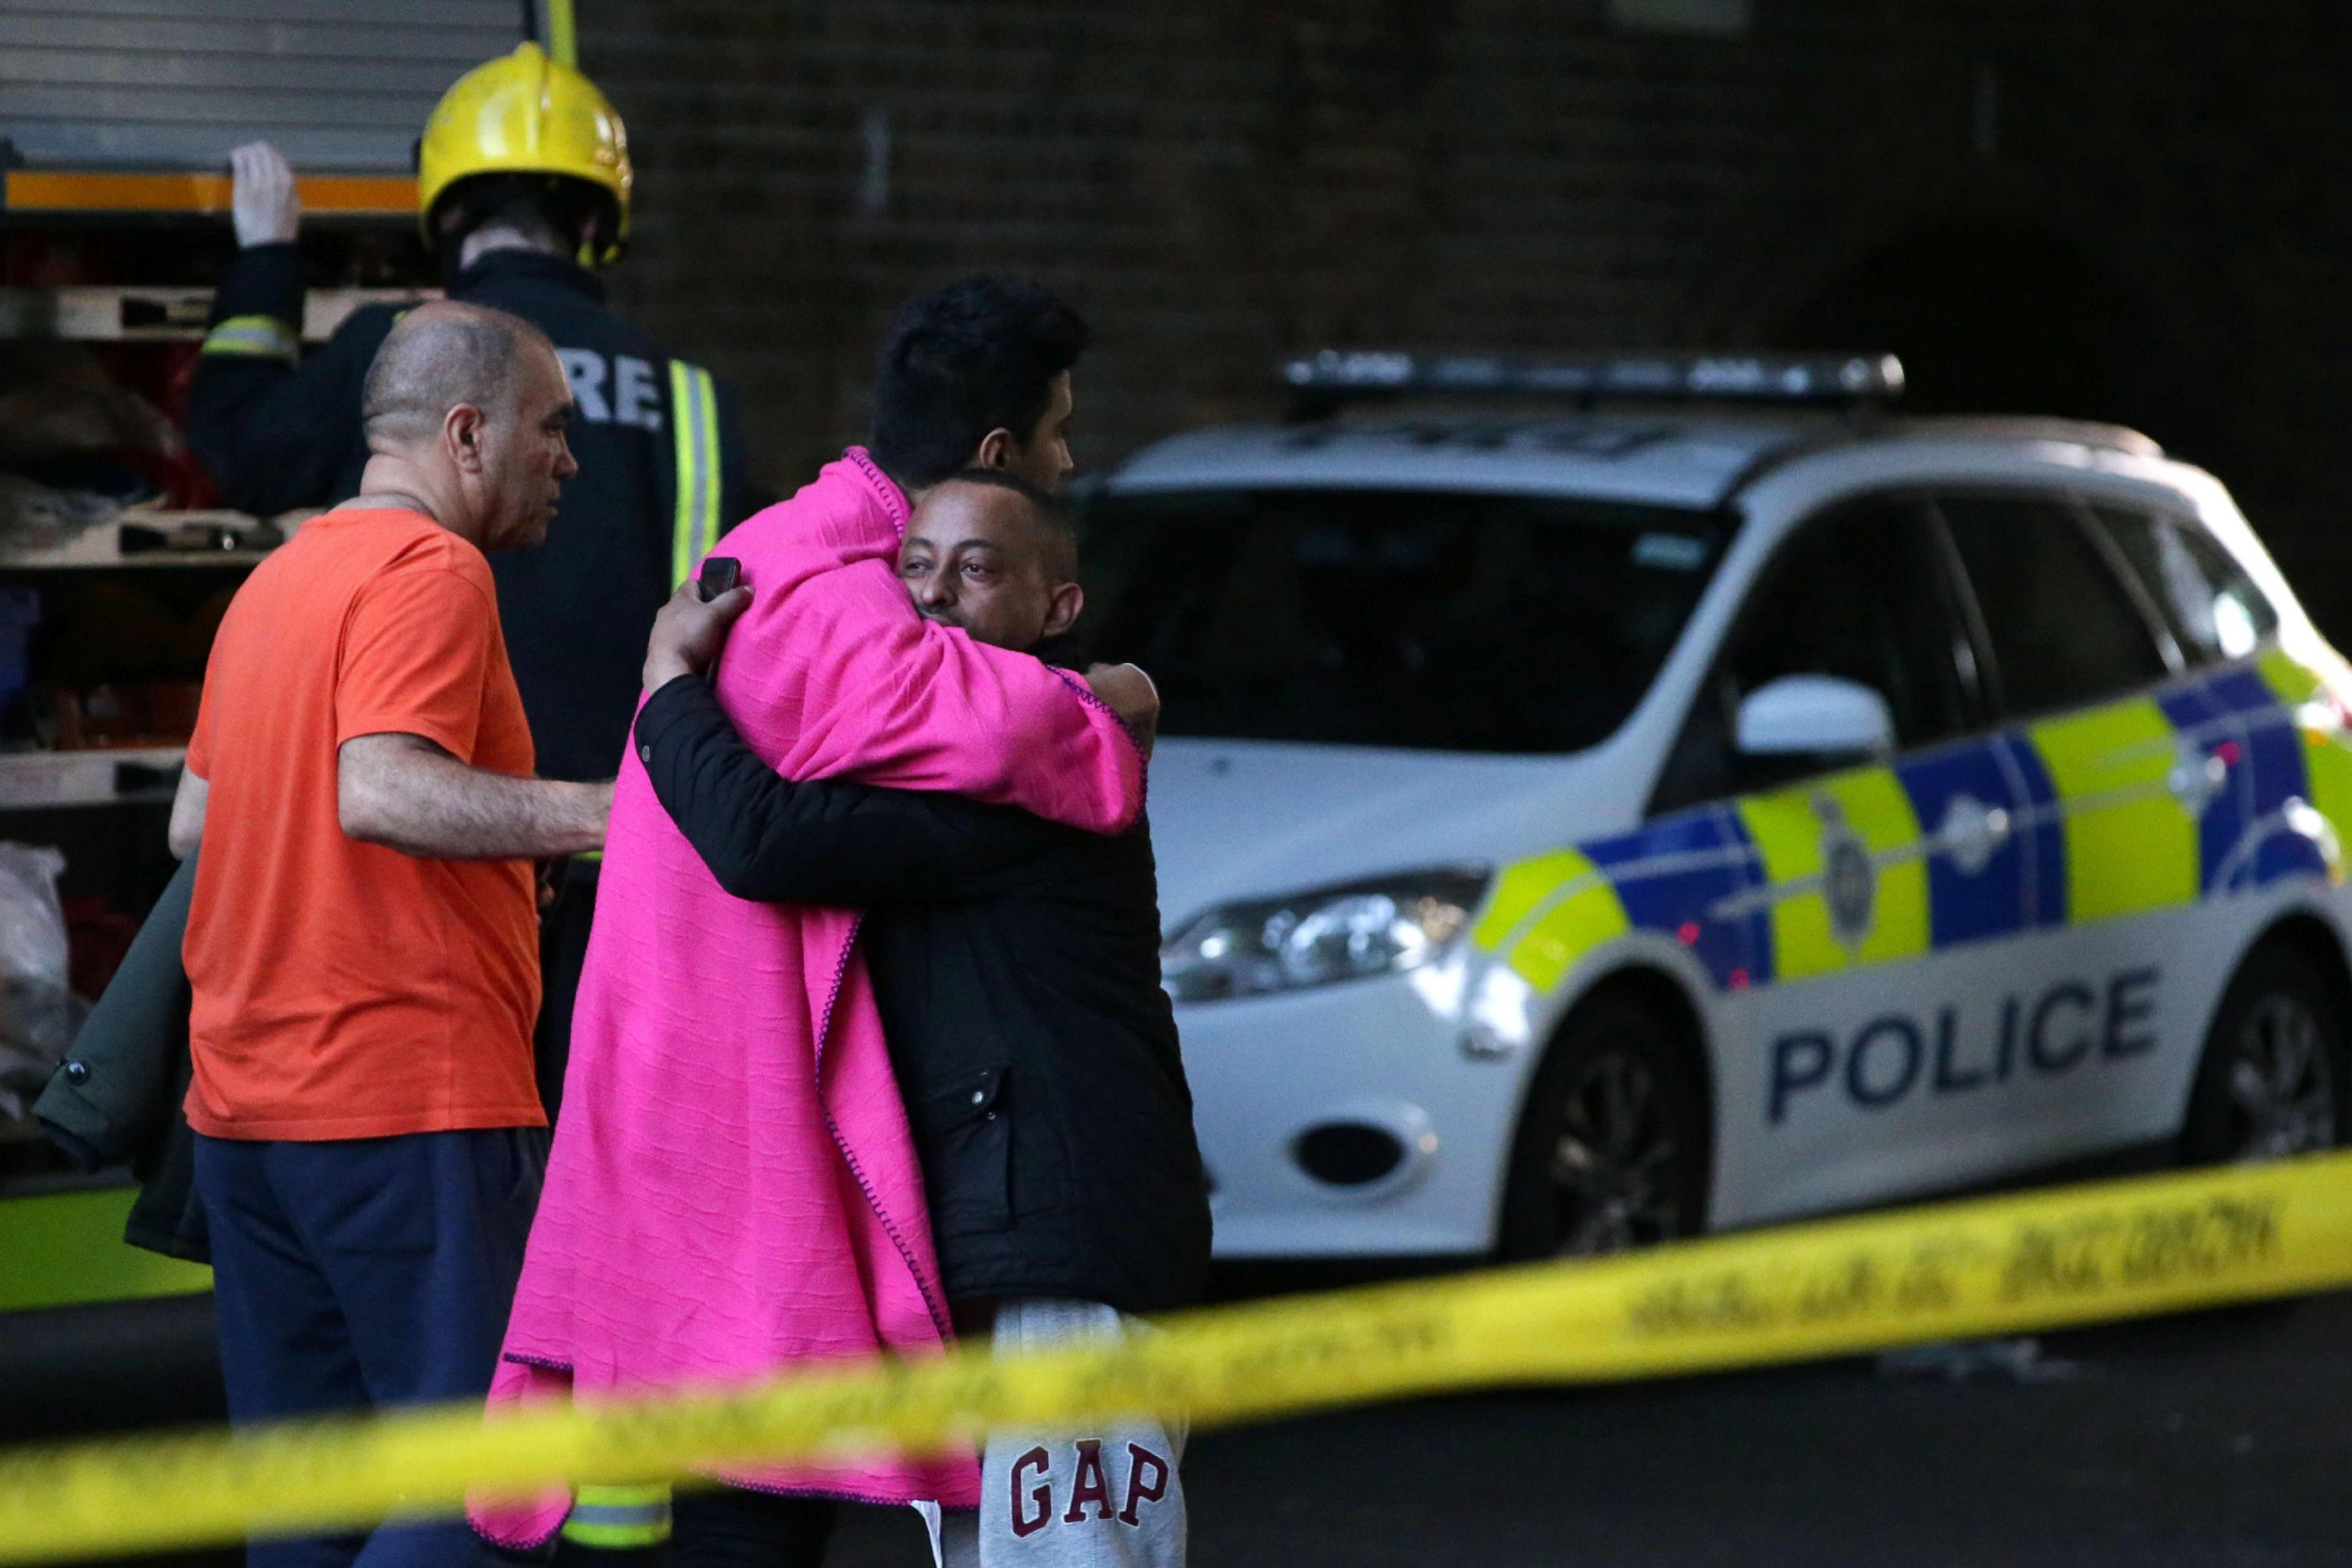 How to help those affected by the Grenfell Tower fire in London